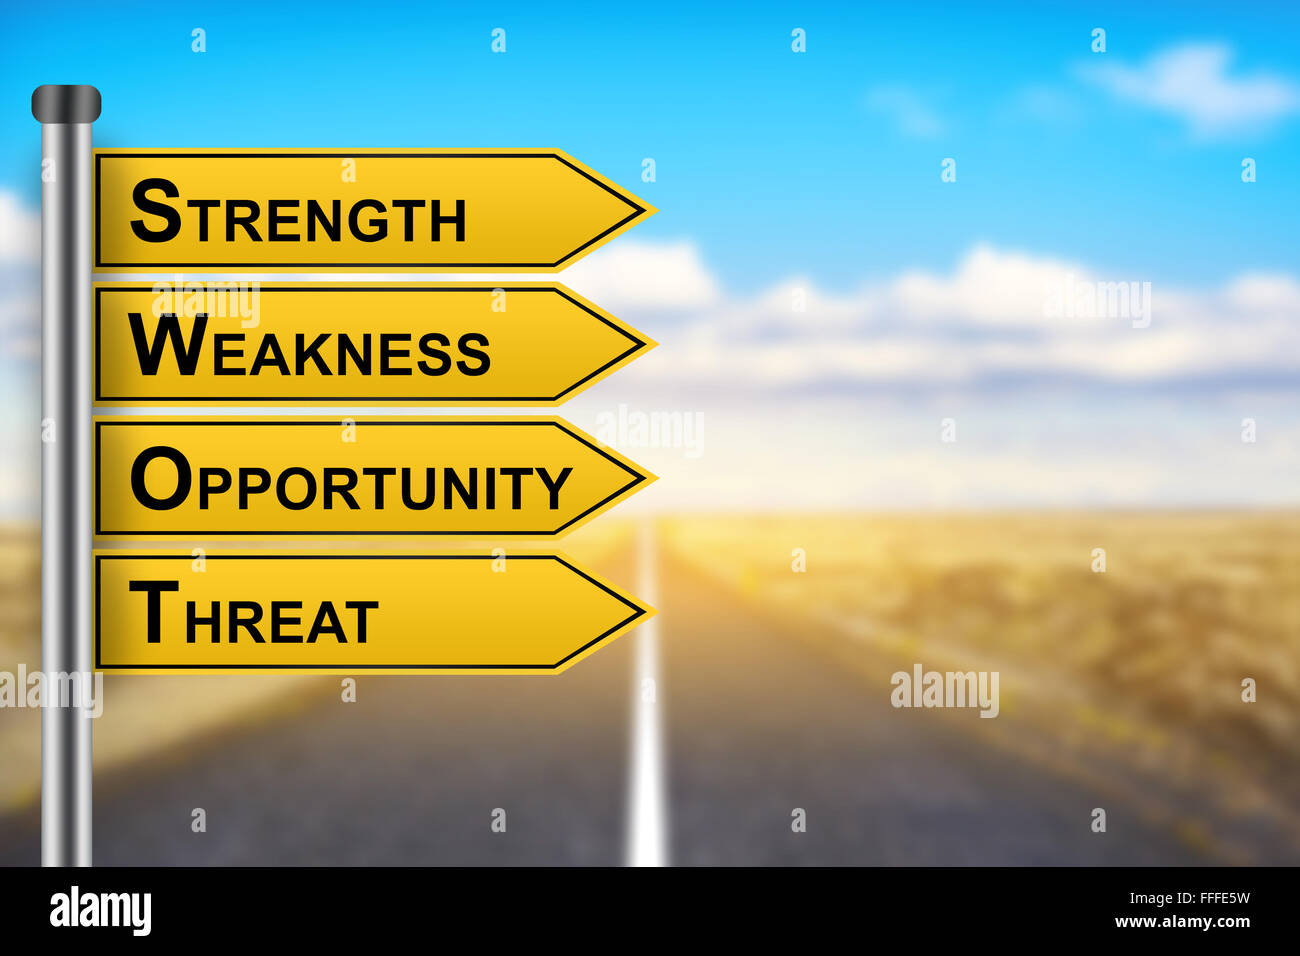 swot analysis strength weakness opportunity and threat